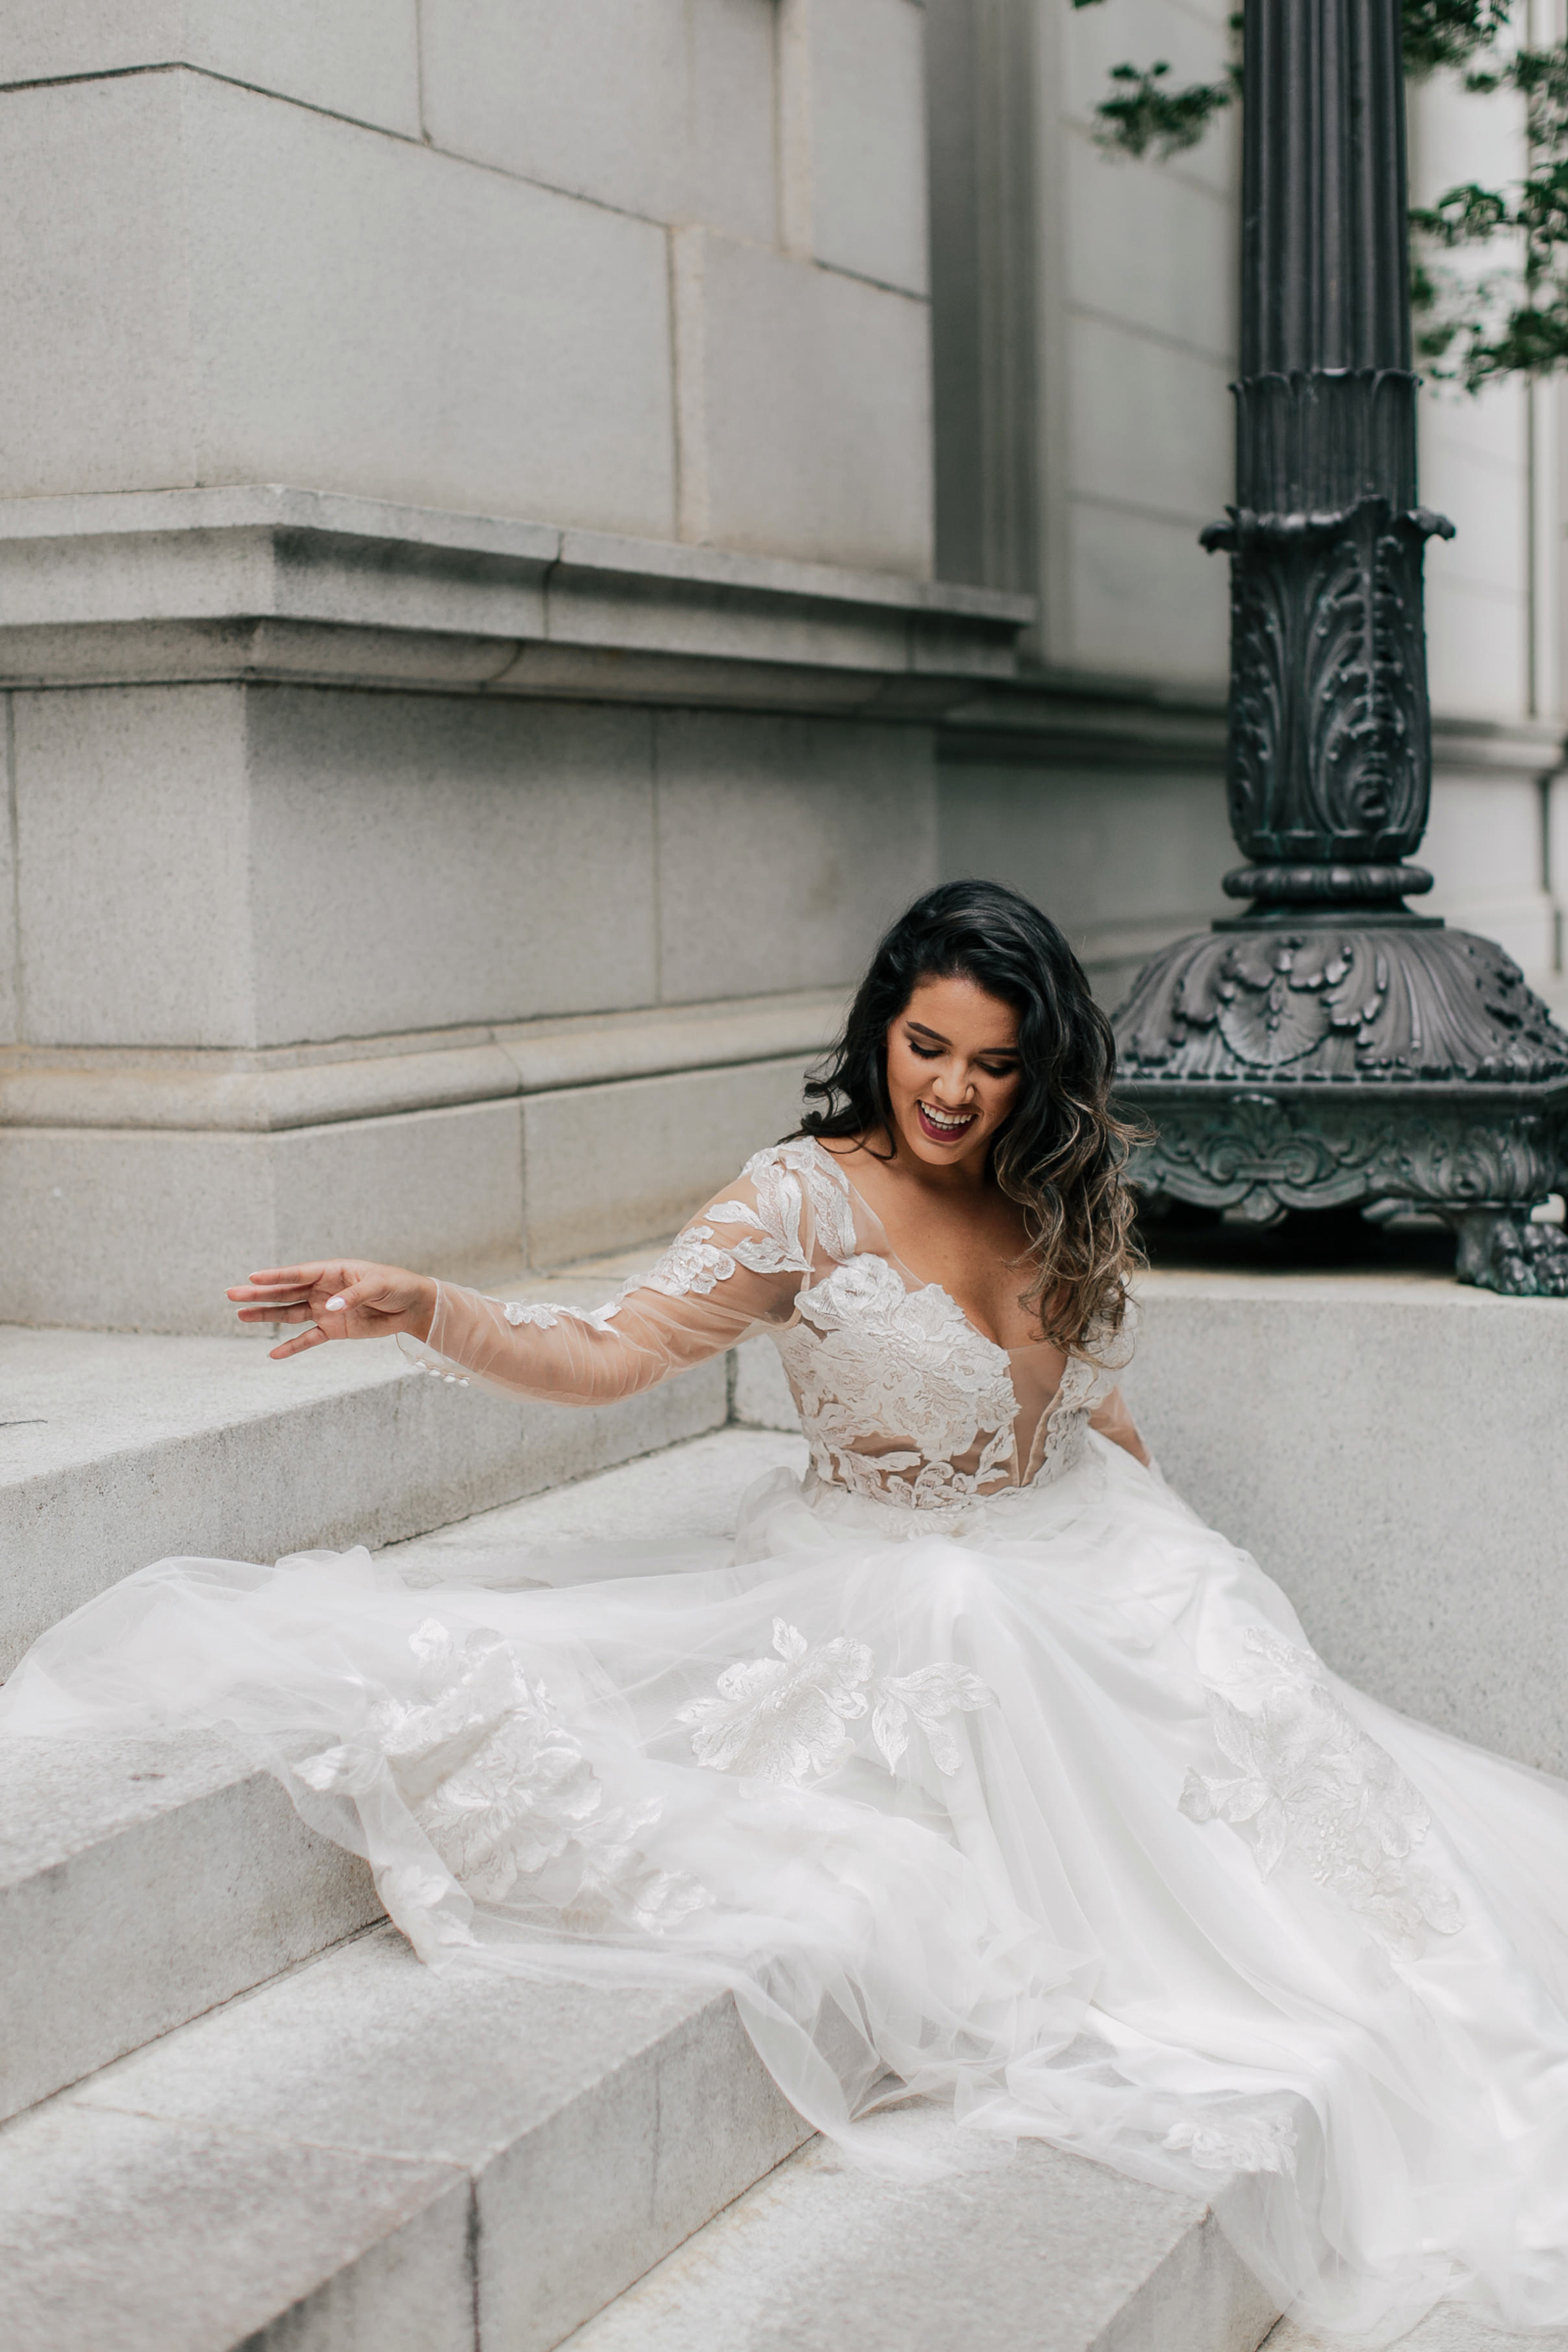 Bridal-Raleigh-Downtown-Styled-Shoot-3.jpg